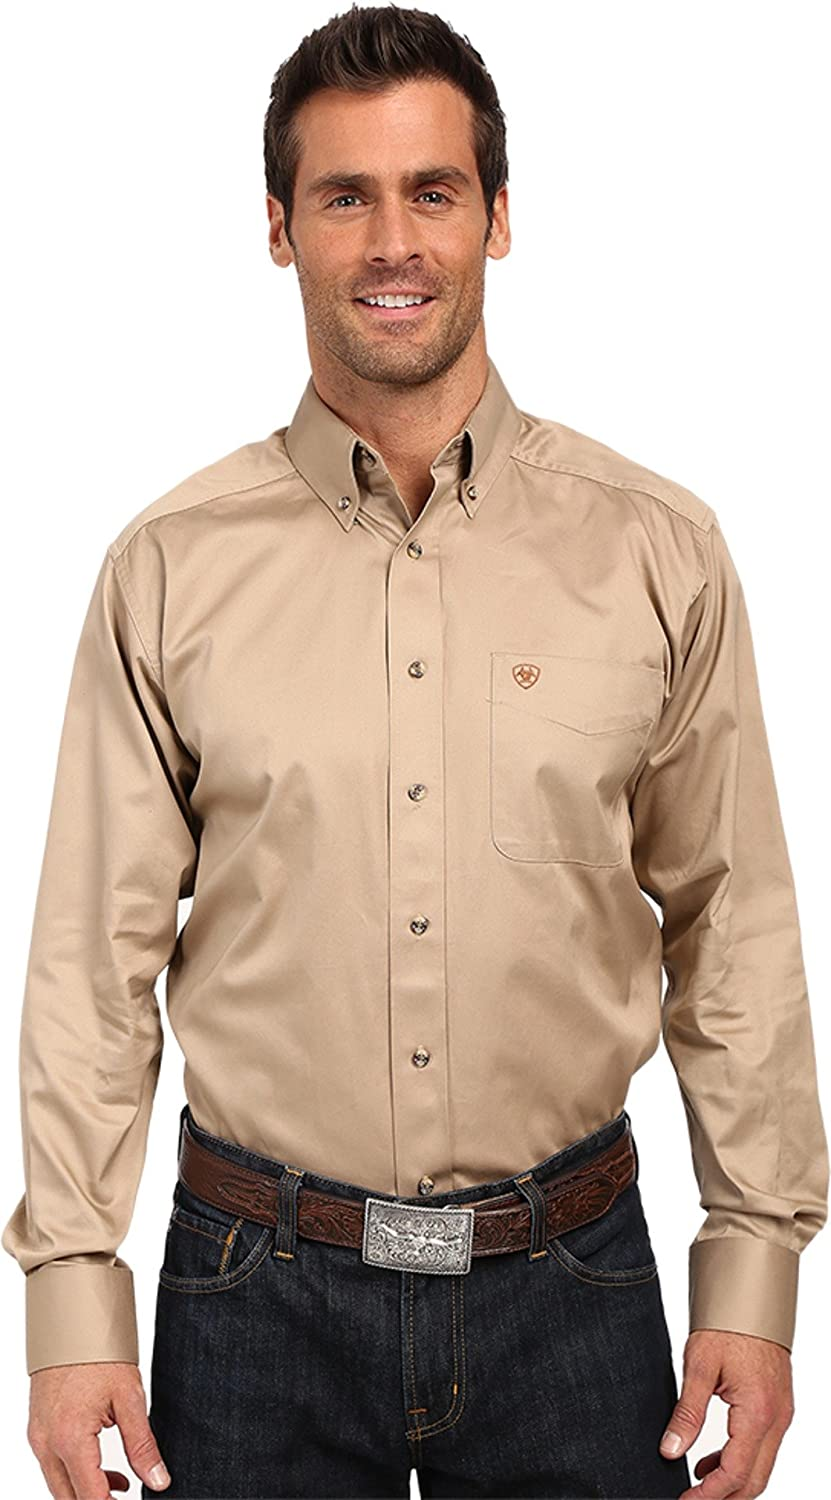 Ariat Solid Twill Classic Fit Shirt - Men's Long Sleeve Western Button-Down